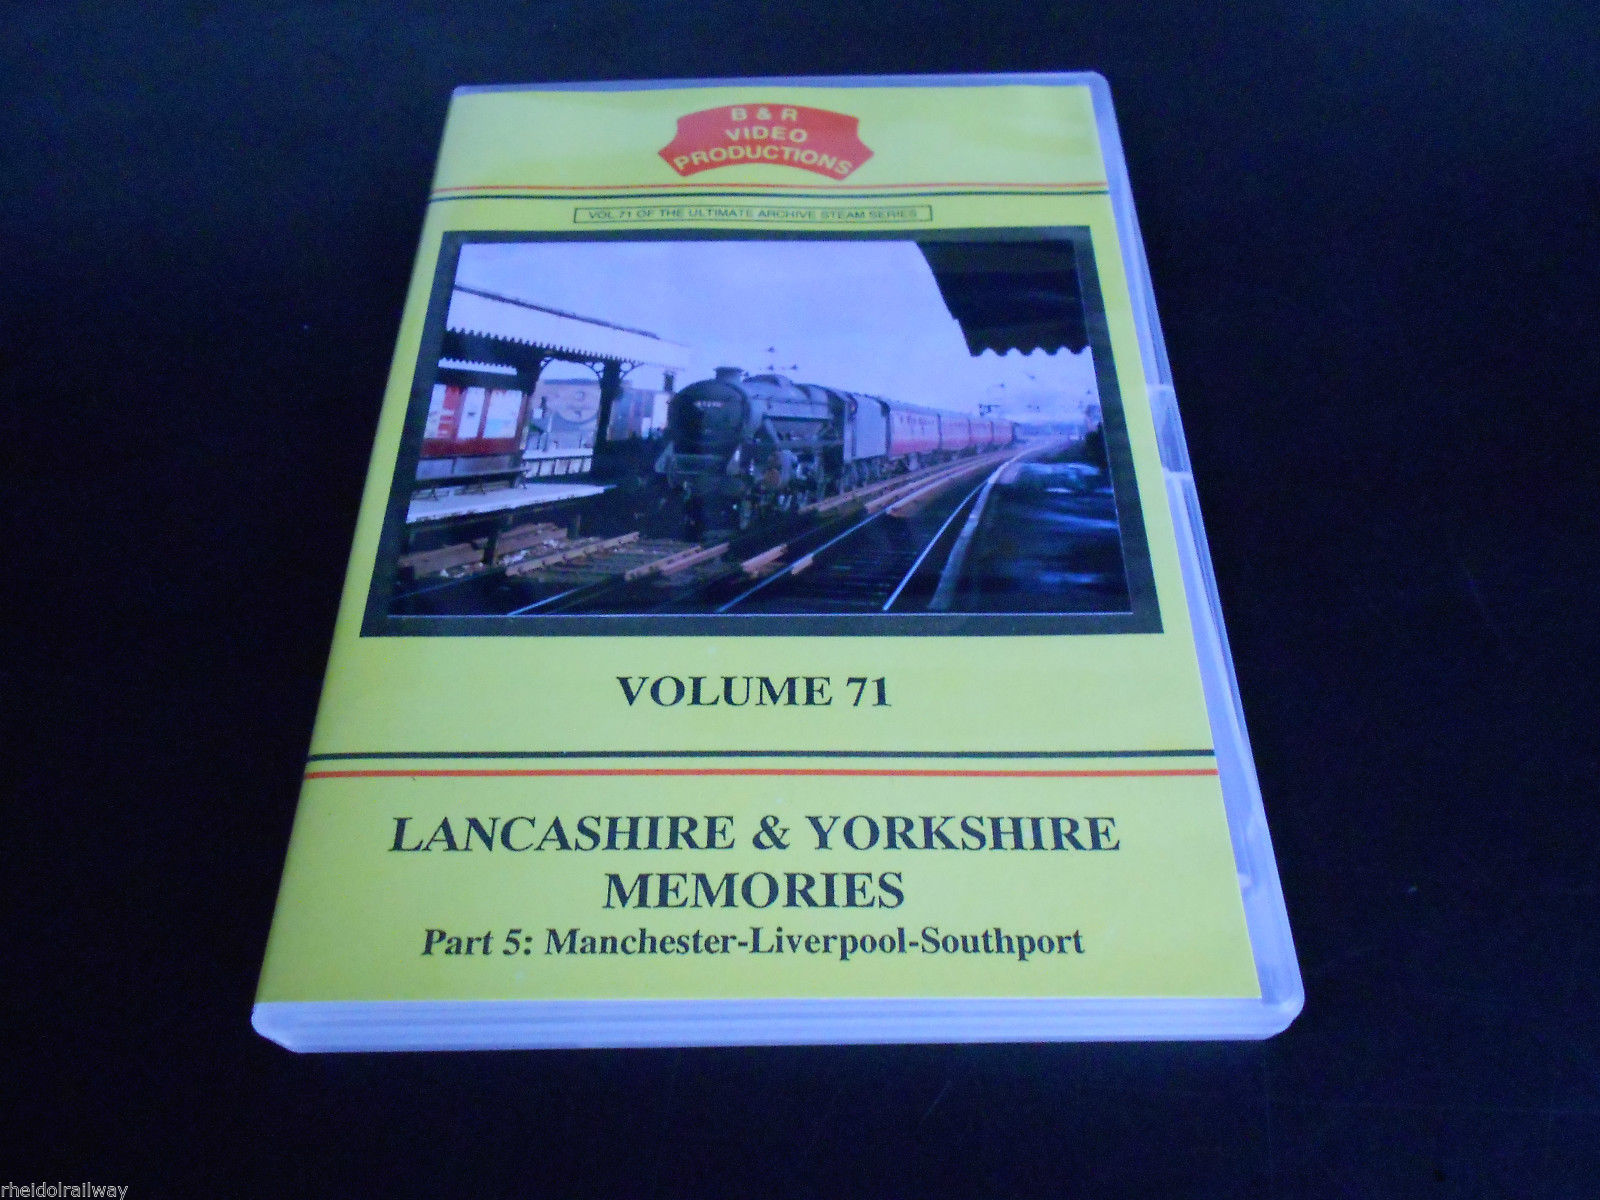 Manchester-Liverpool-Southport Part 5 Lancashire & Yorkshire Memories Vol.71 DVD - The Vale of Rheidol Railway